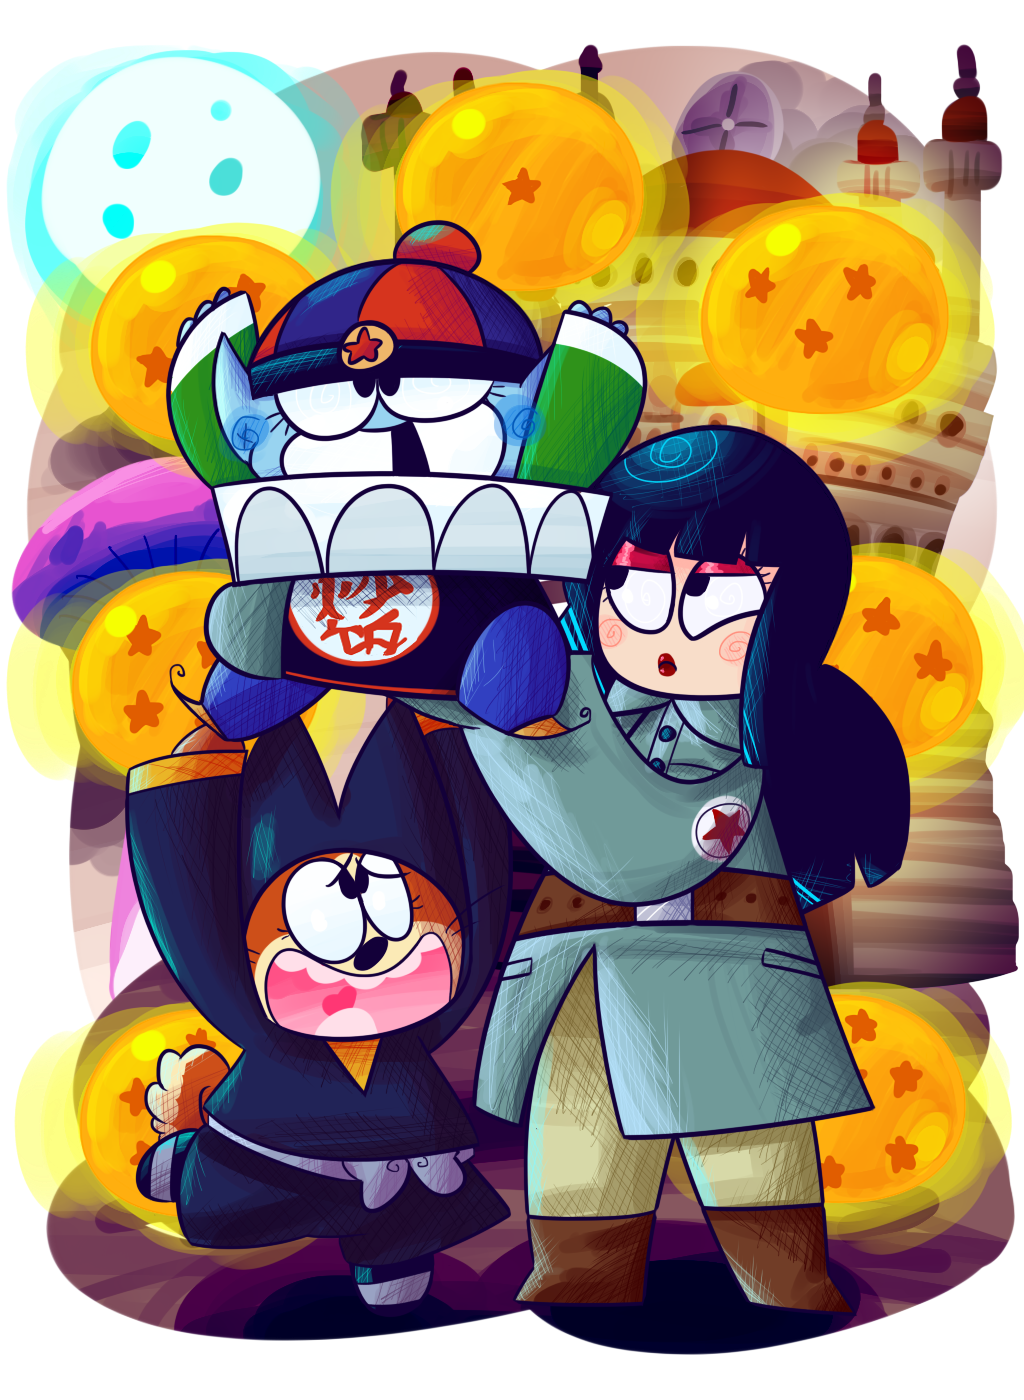 The Pilaf Saga by KrystalFleming